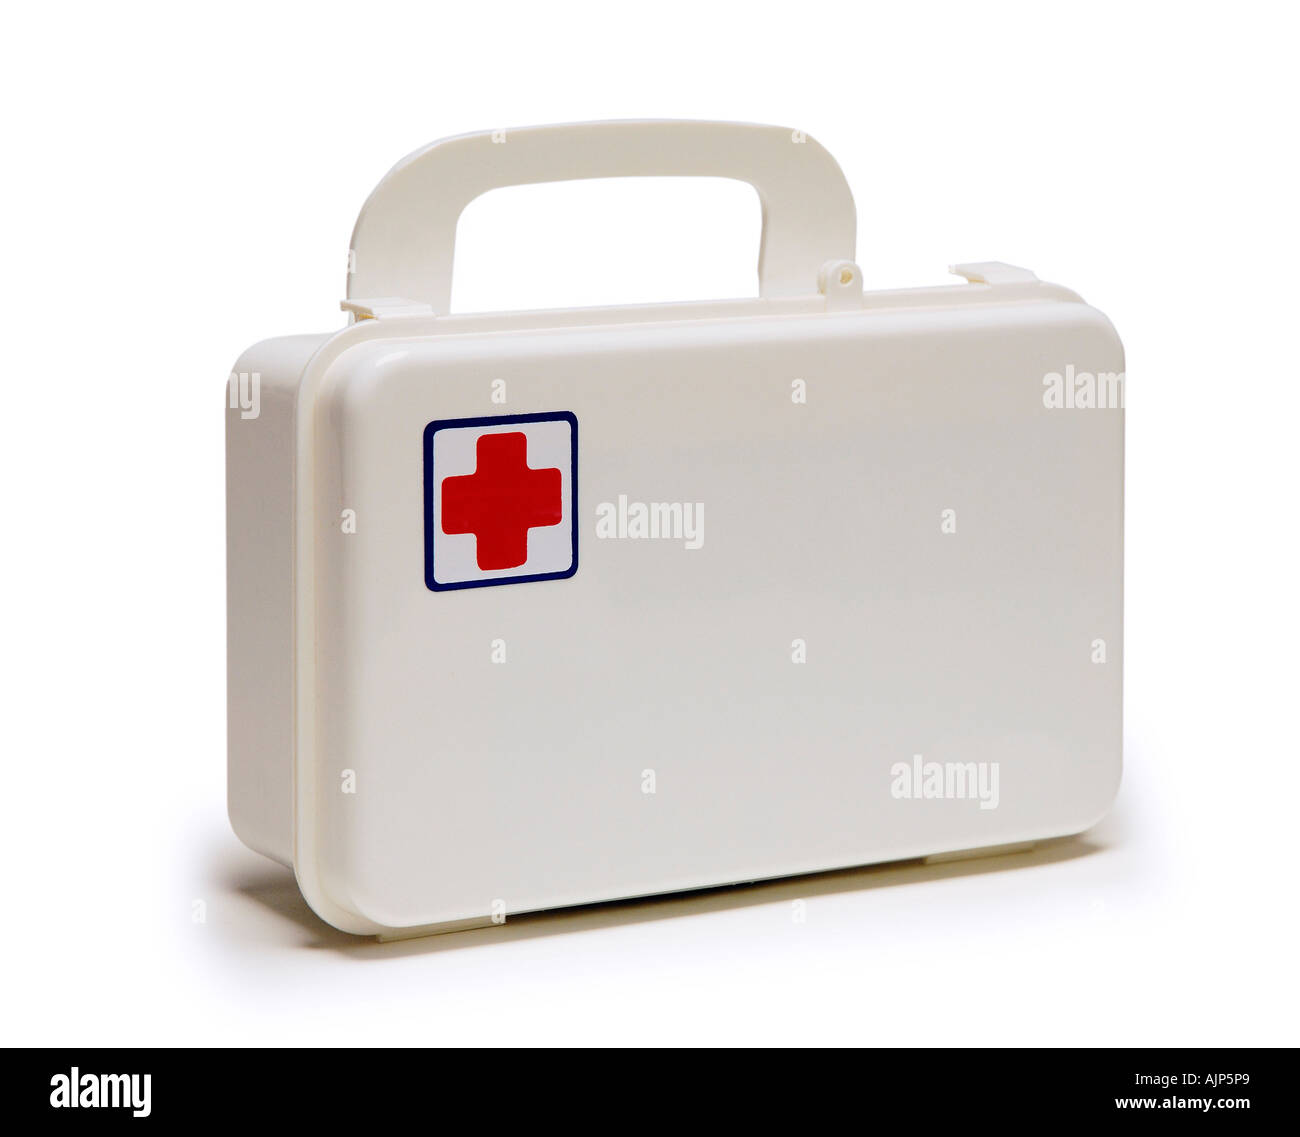 FIRST AID KIT BOX ON WHITE BACKGROUND - Stock Image